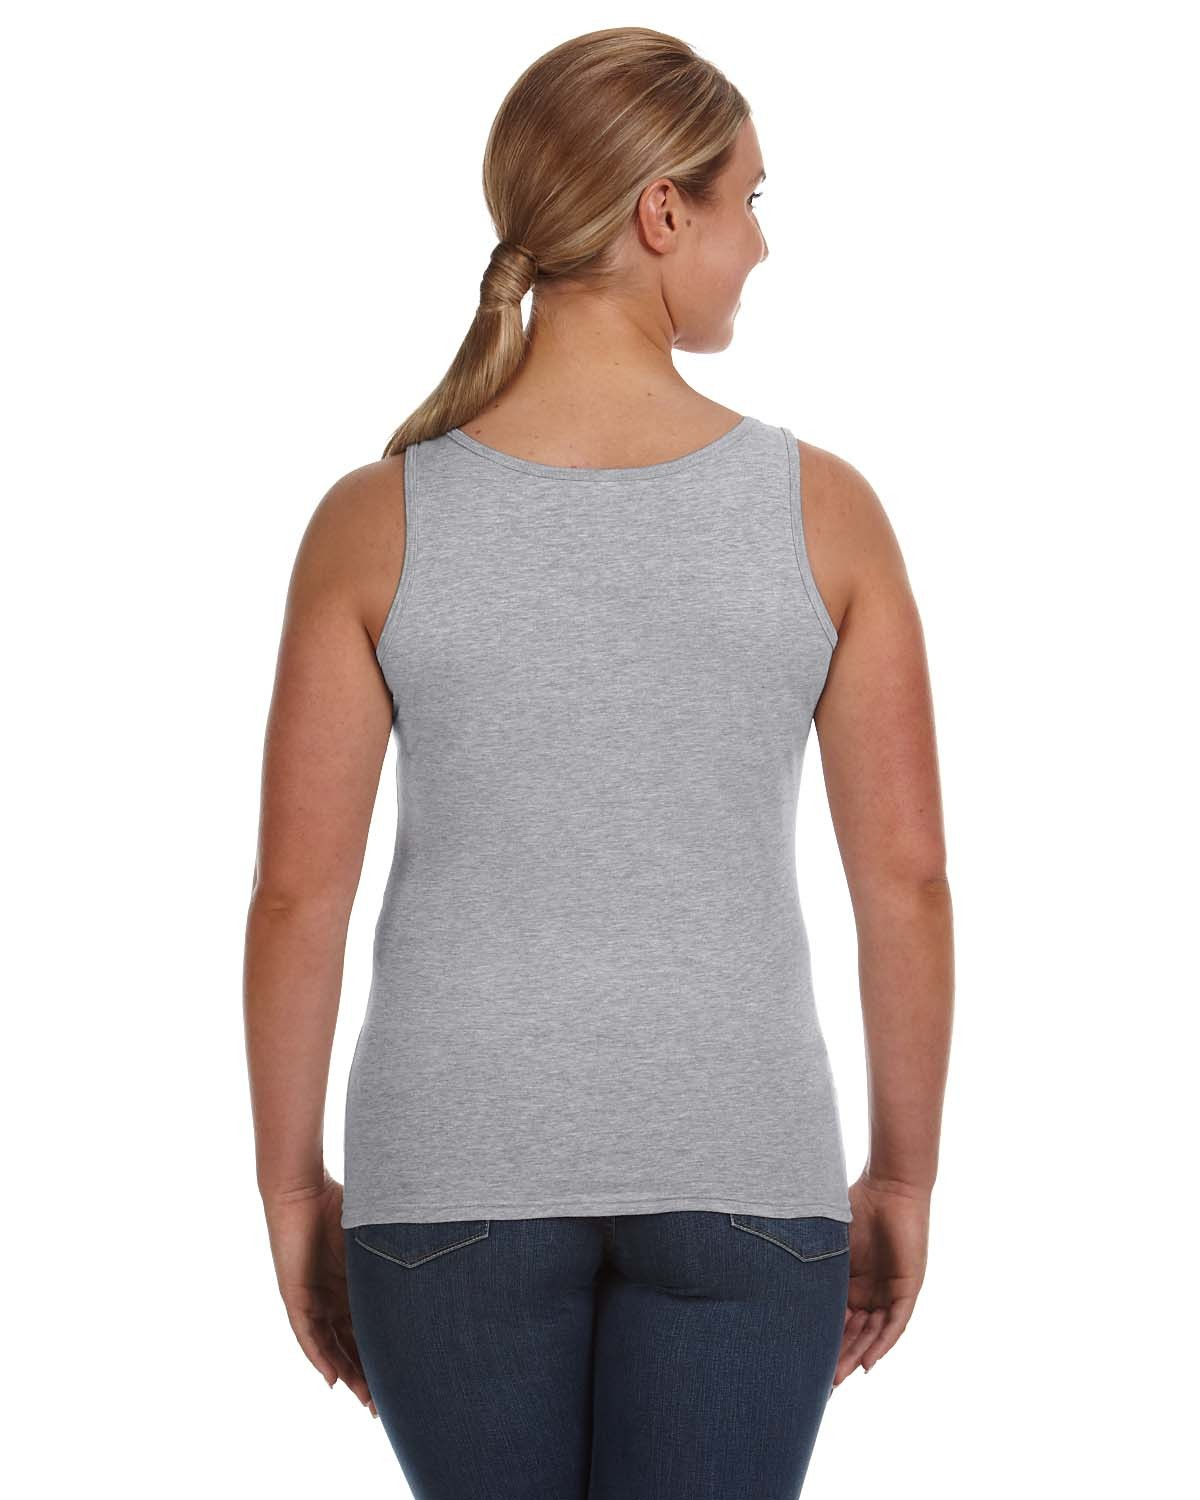 882L Anvil HEATHER GREY